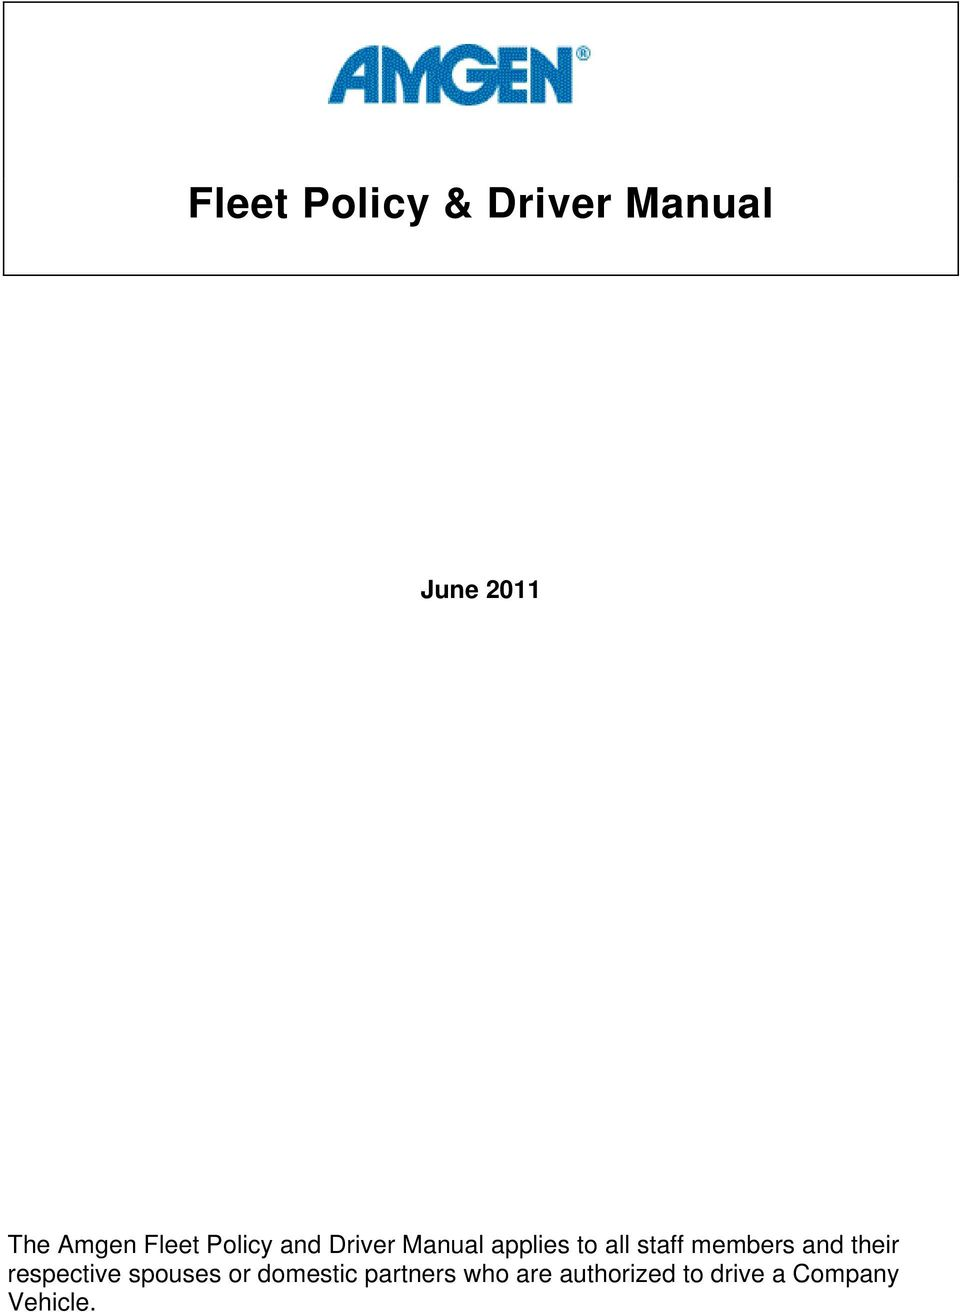 members and their respective spouses or domestic. 2 TABLE OF CONTENTS Fleet  Policy & Driver Manual GENERAL YOUR VEHICLE ...